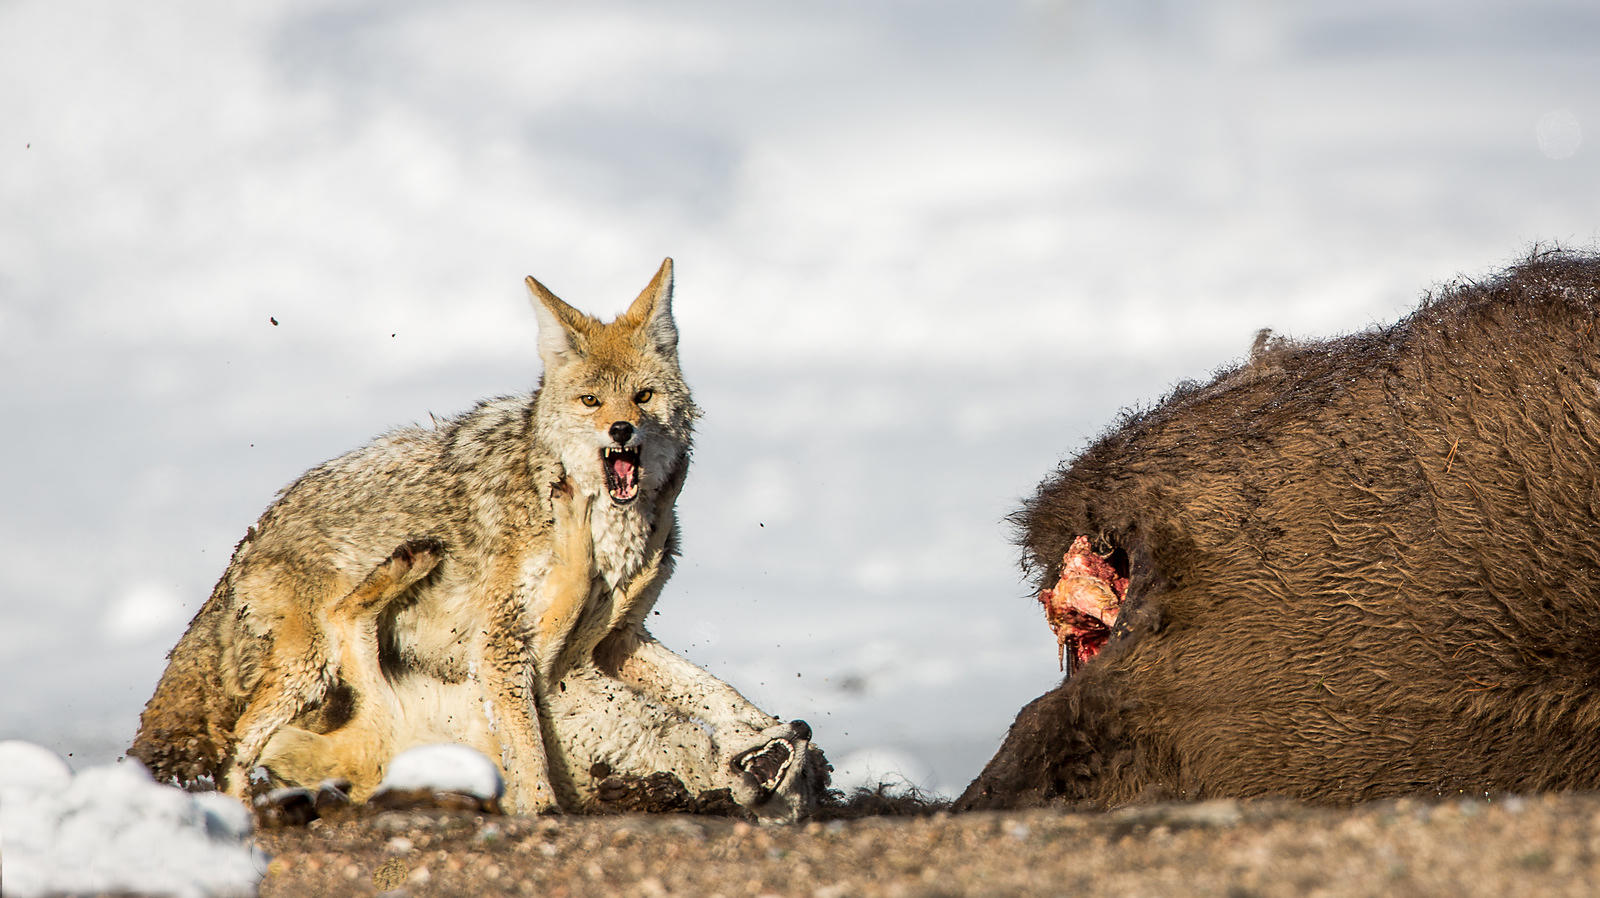 Coyotes fight for dominance next to a winter-kill bison. Yellowstone National Park, Wyoming, 2013.